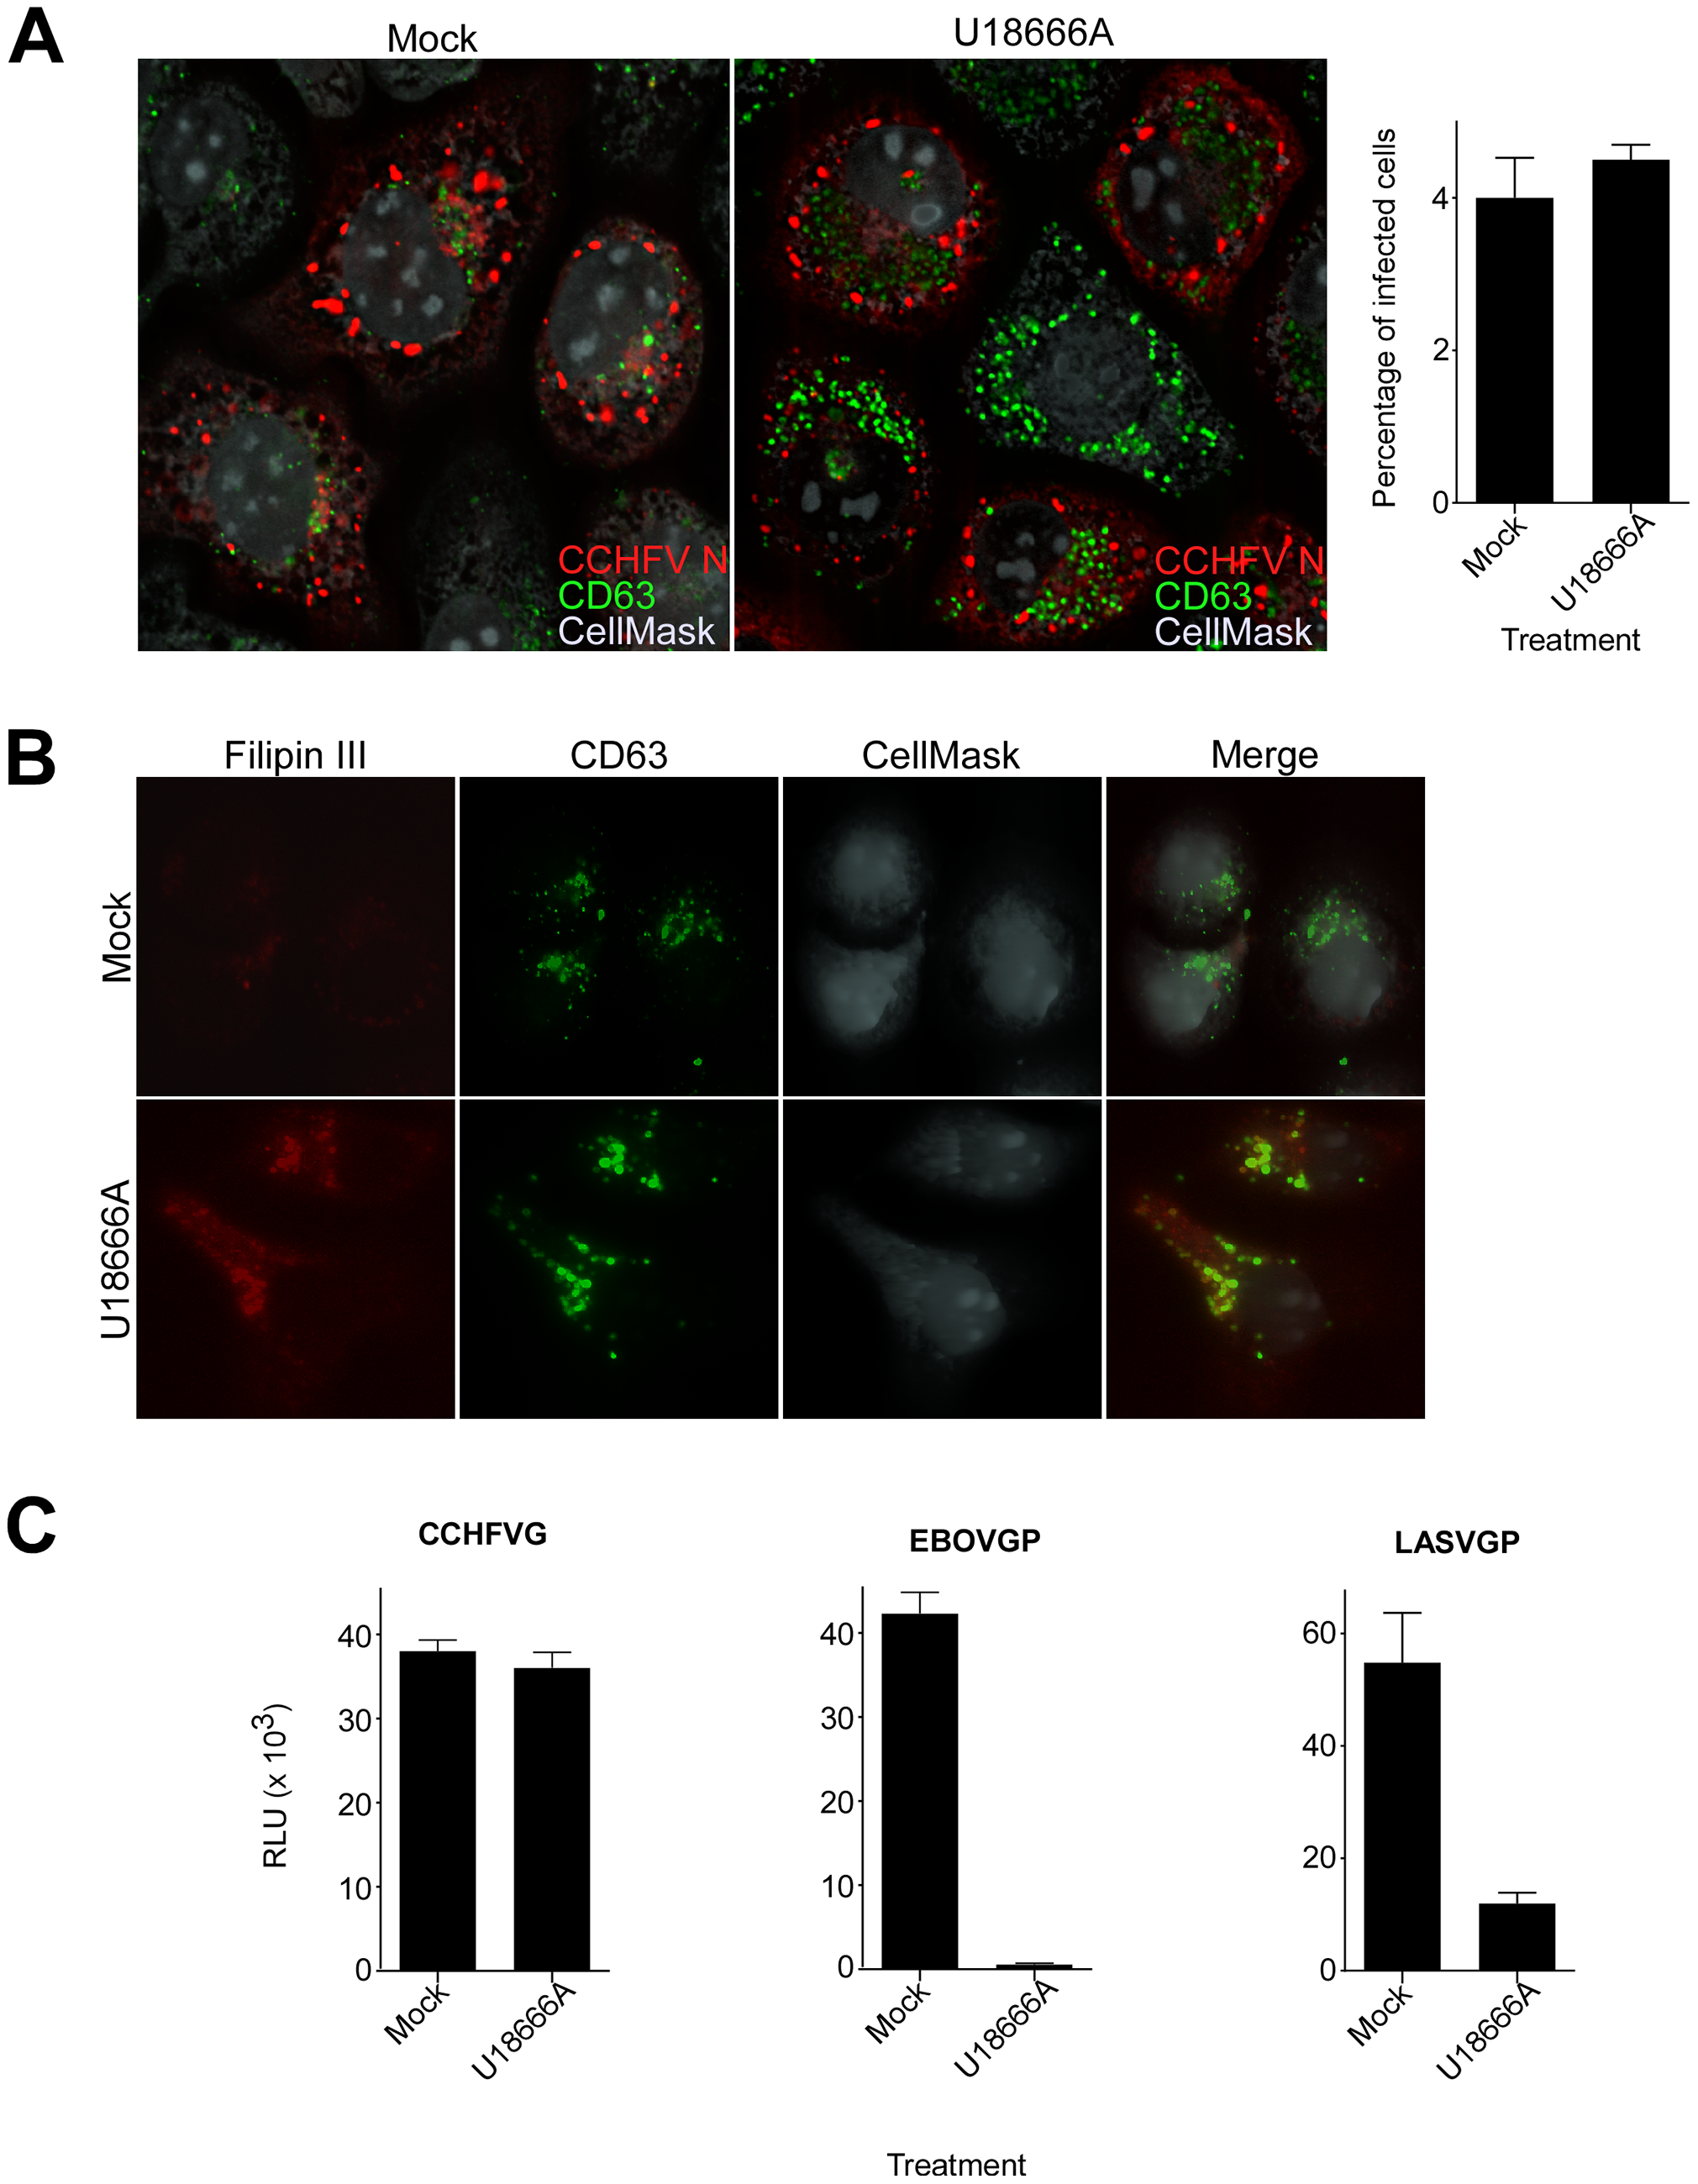 Lipid transport out of MVBs is dispensable for CCHFV entry.